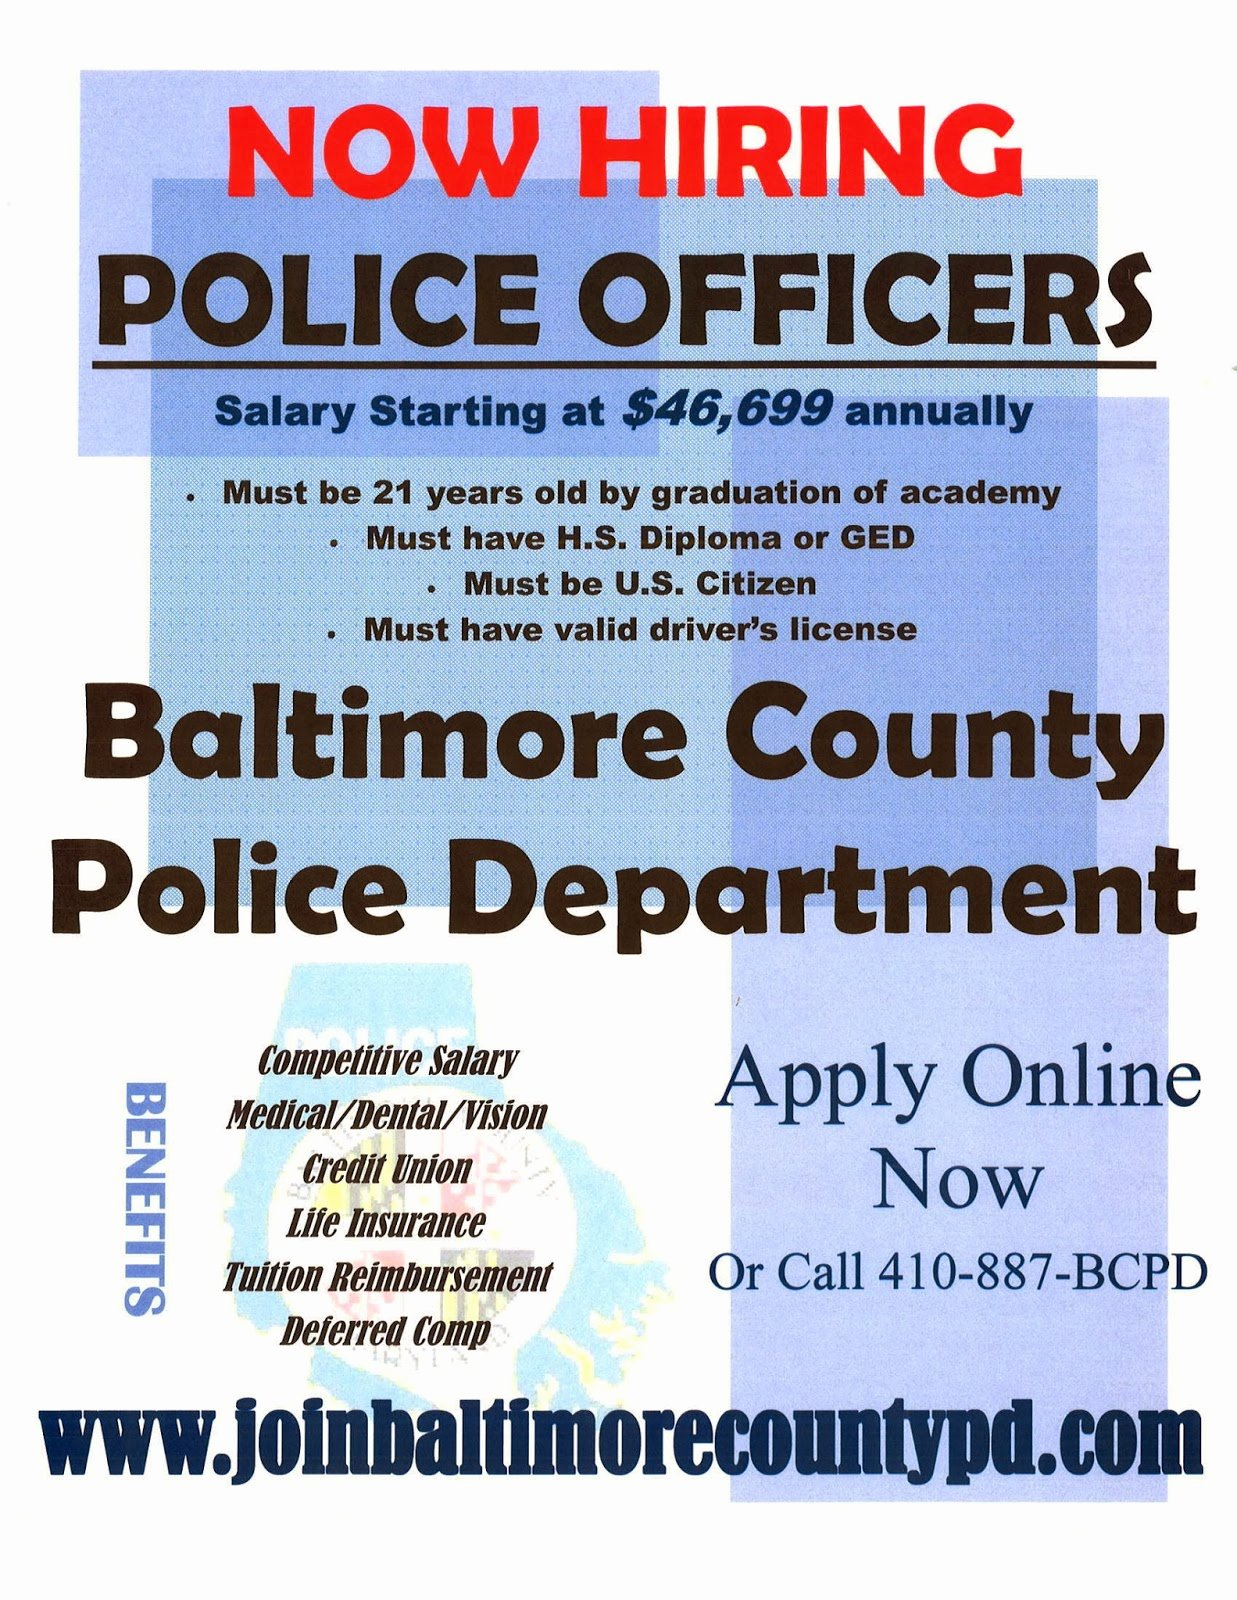 Now Hiring Flyer Template Elegant Ccjs Undergrad Blog Baltimore County Police Department